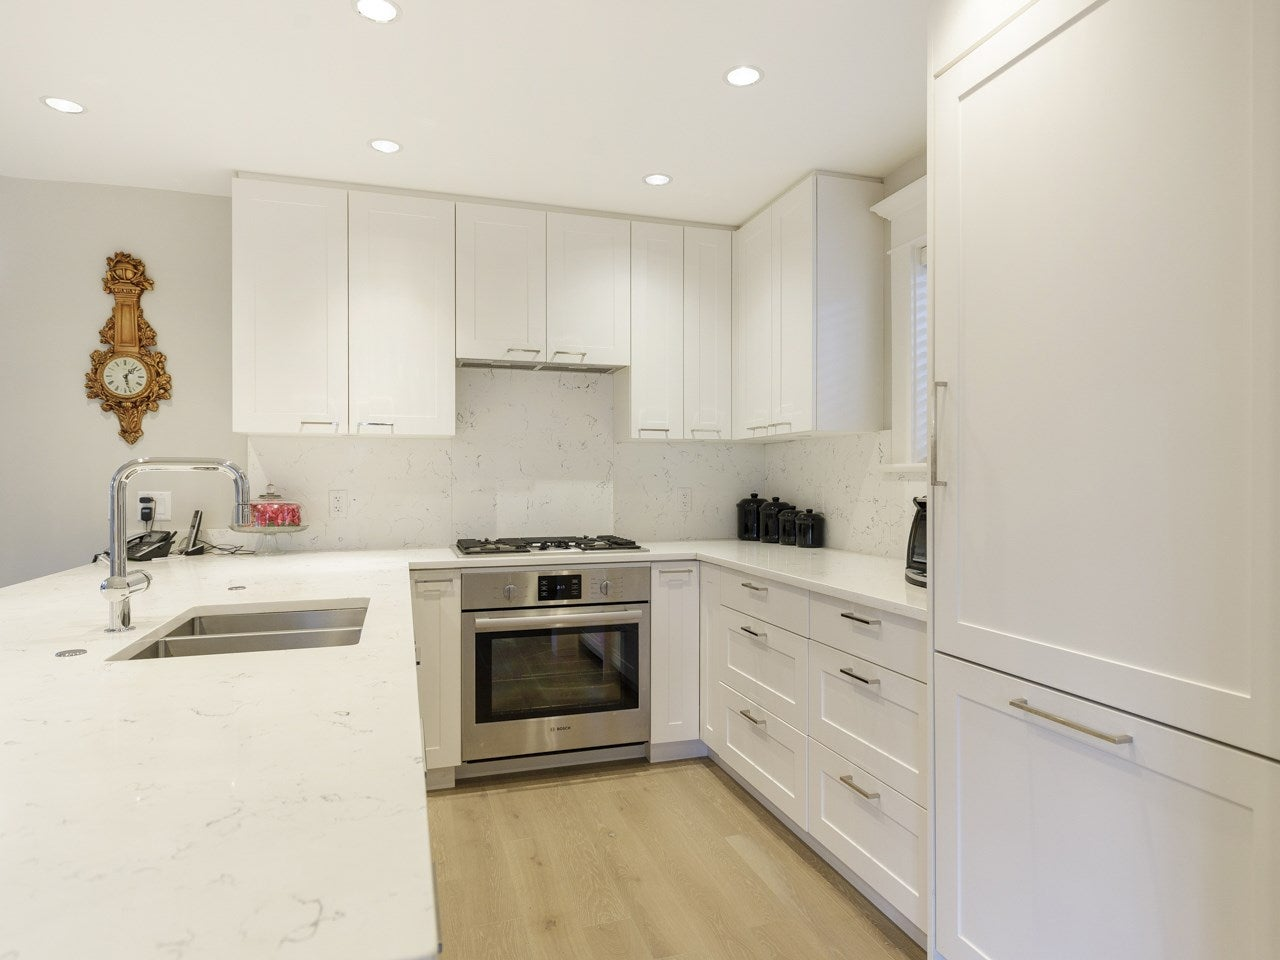 3 465 W 13TH AVENUE - Mount Pleasant VW Townhouse for sale, 3 Bedrooms (R2526442) - #6